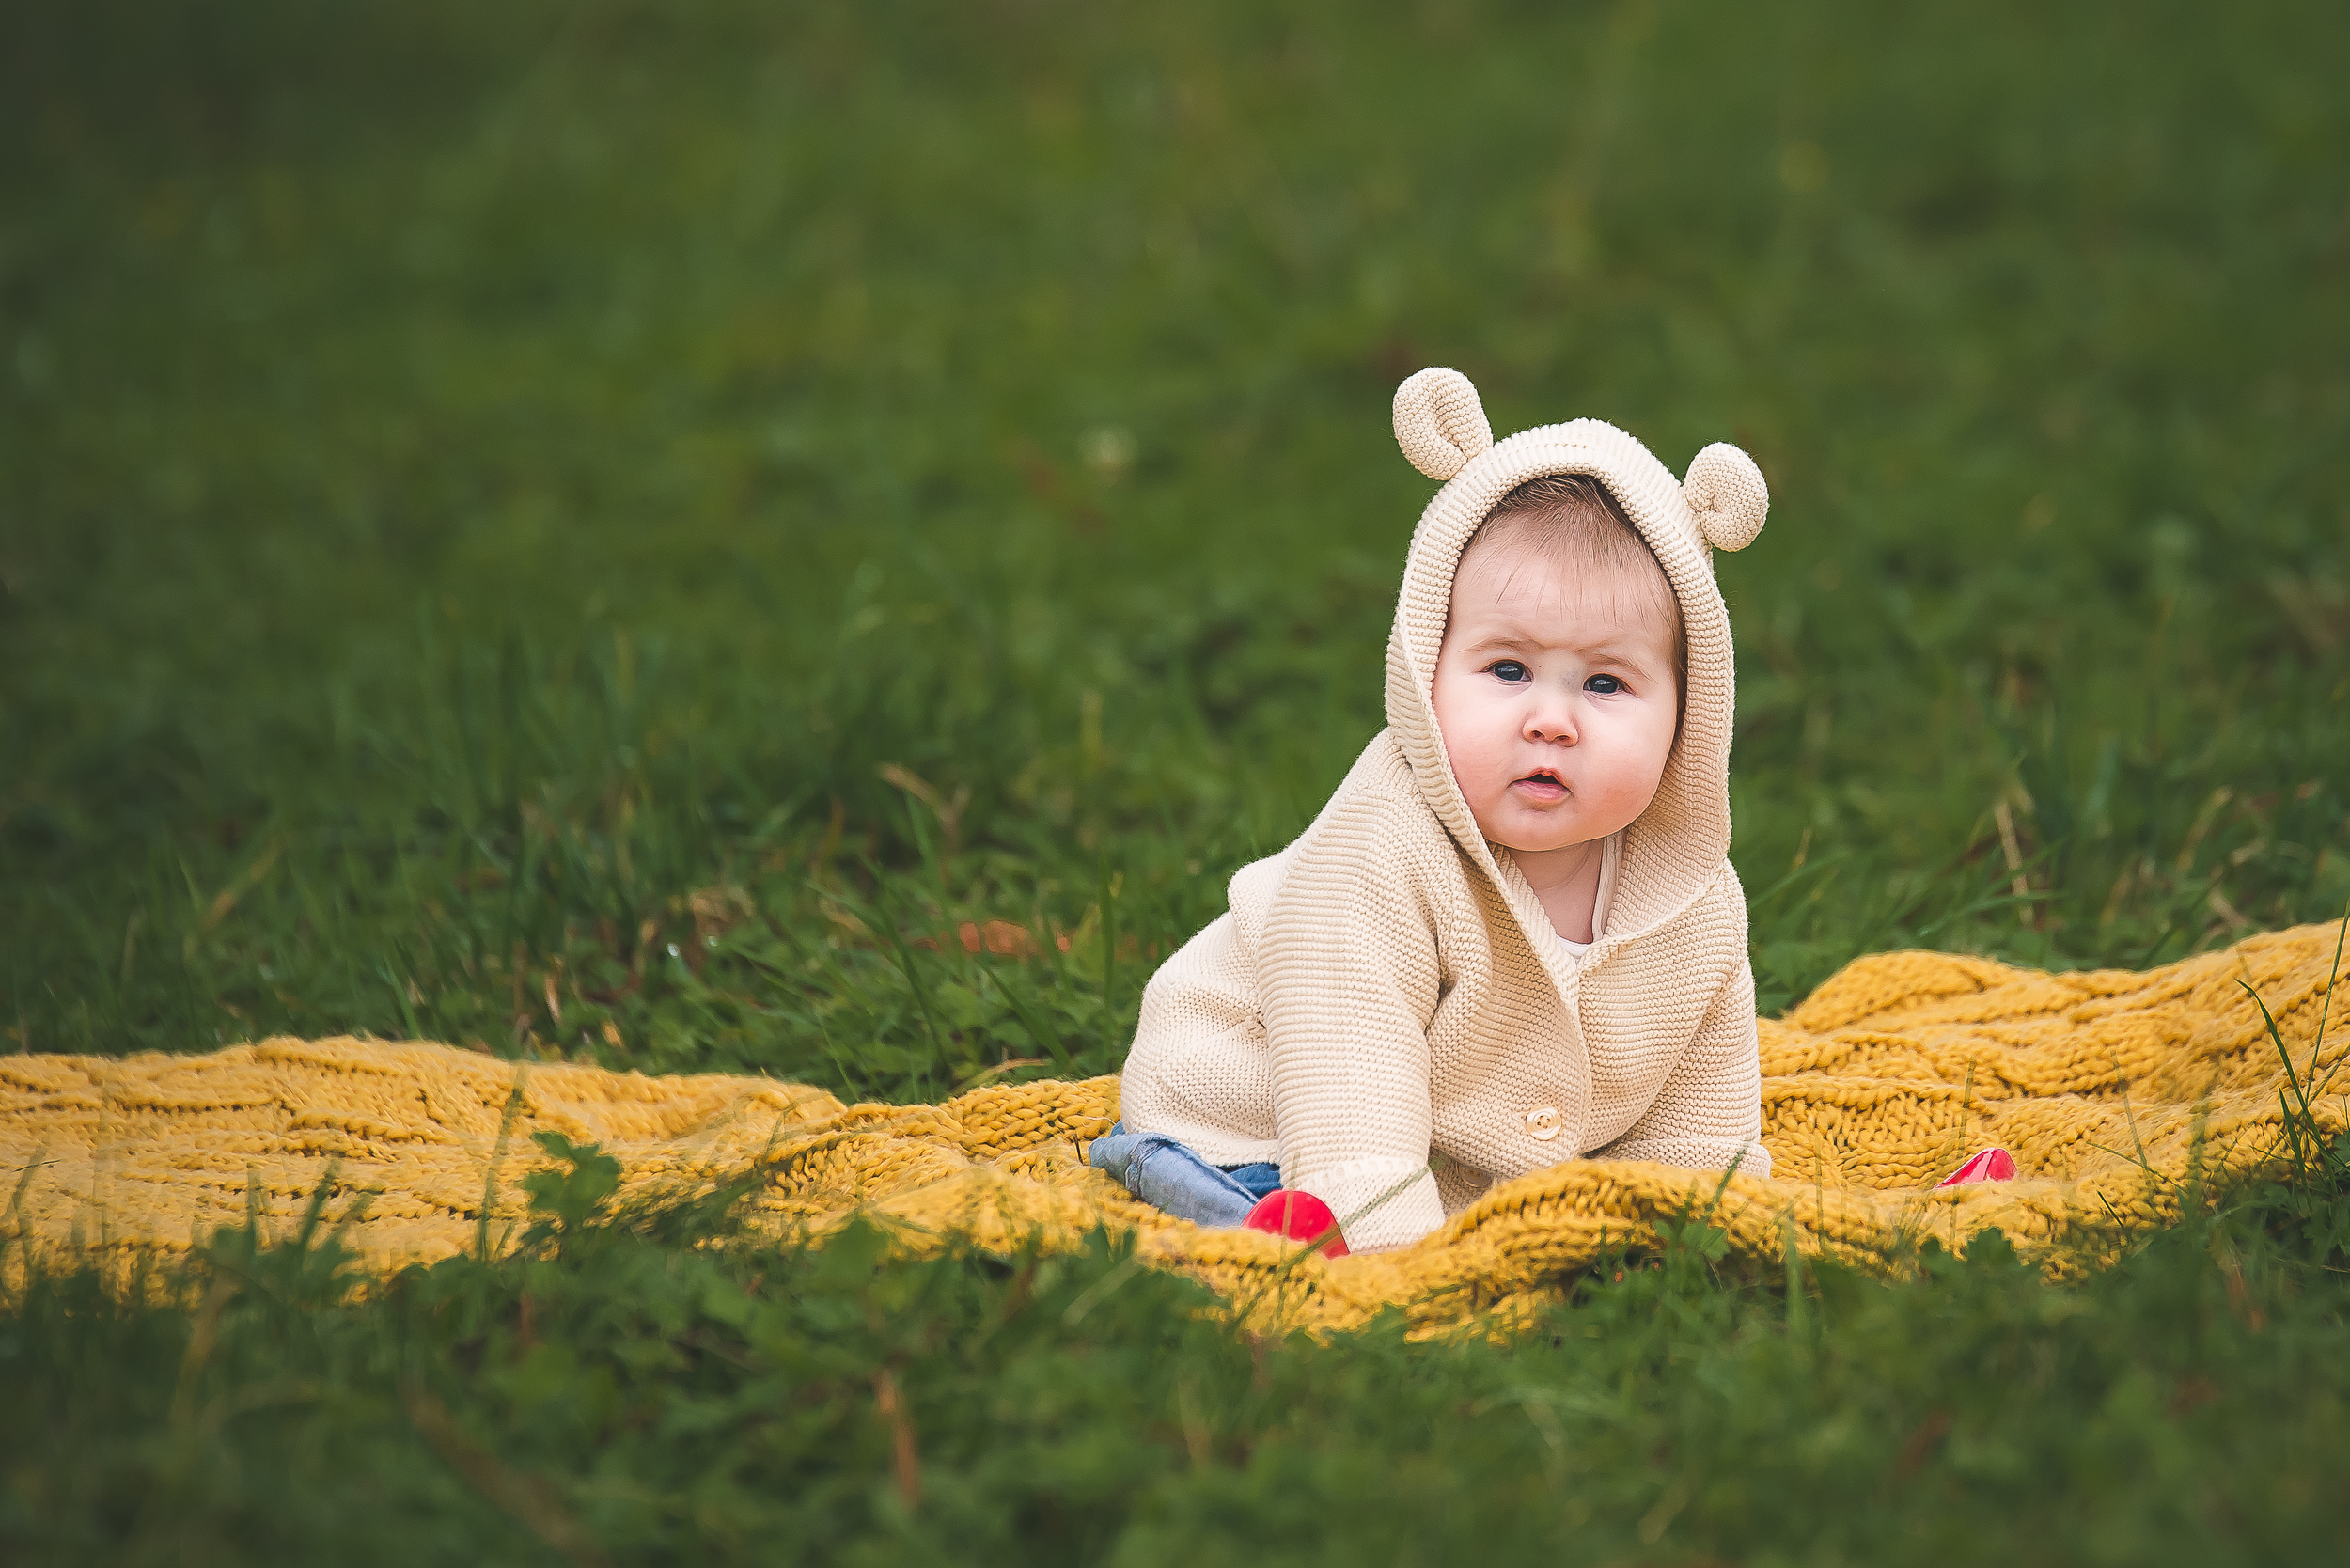 Seattle family photographer photo of Baby sitting on yellow blanket in the grass